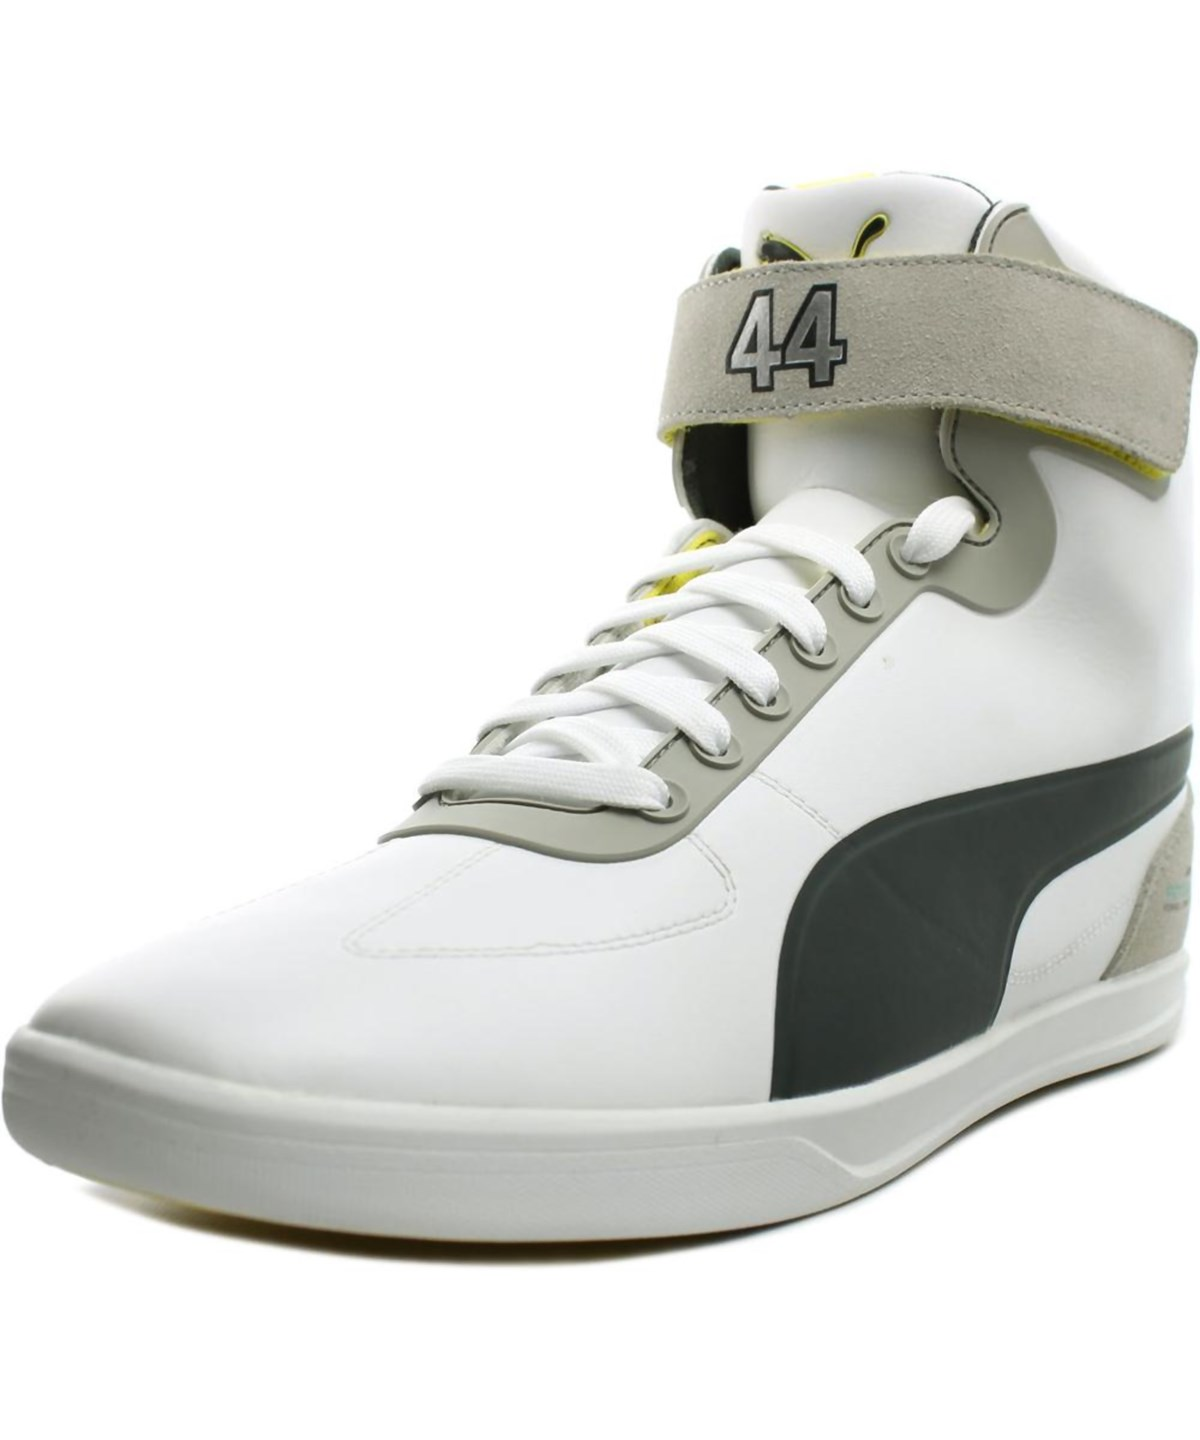 Puma Mamgp Upole Lewis   Round Toe Leather  Sneakers In White